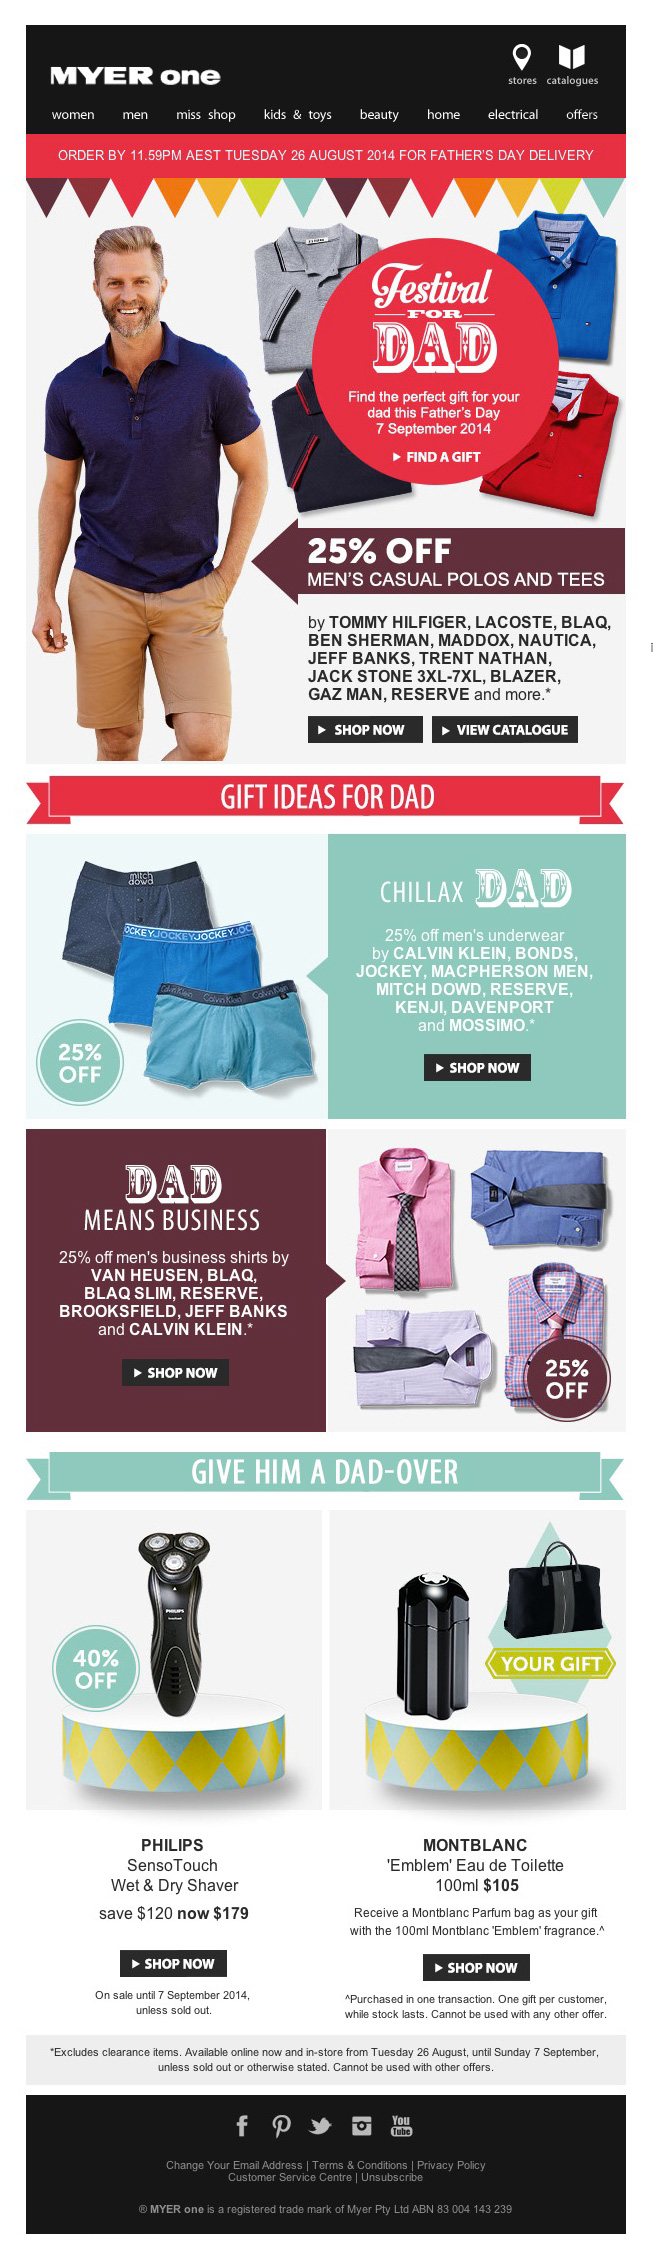 Myer-Fathers-Day.jpg